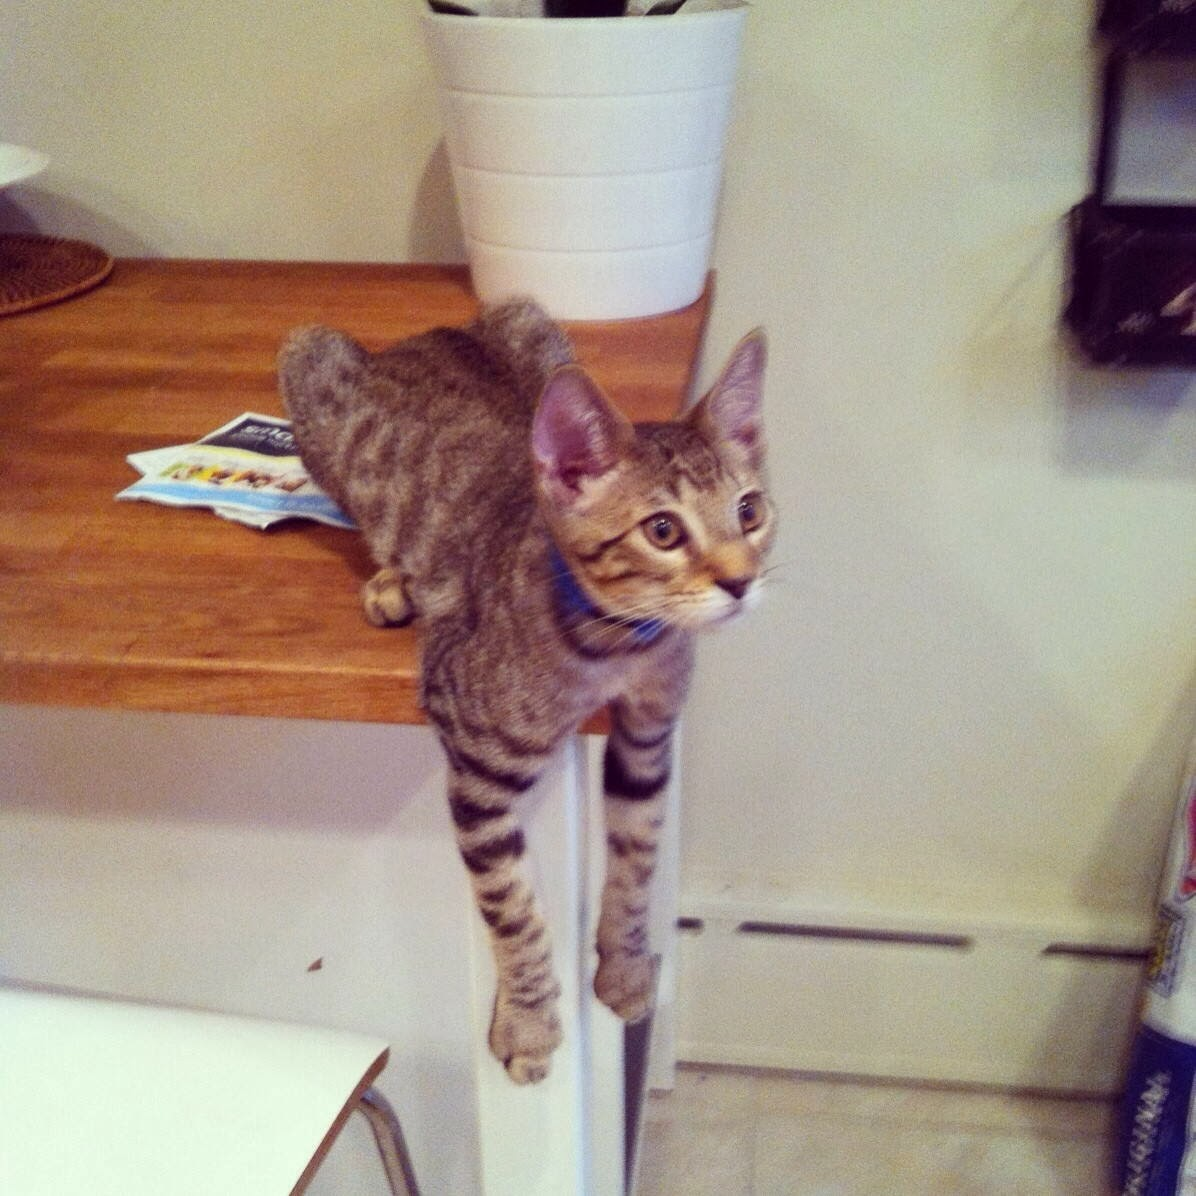 Funny cats - part 90 (40 pics + 10 gifs), cat lays at the edge of table